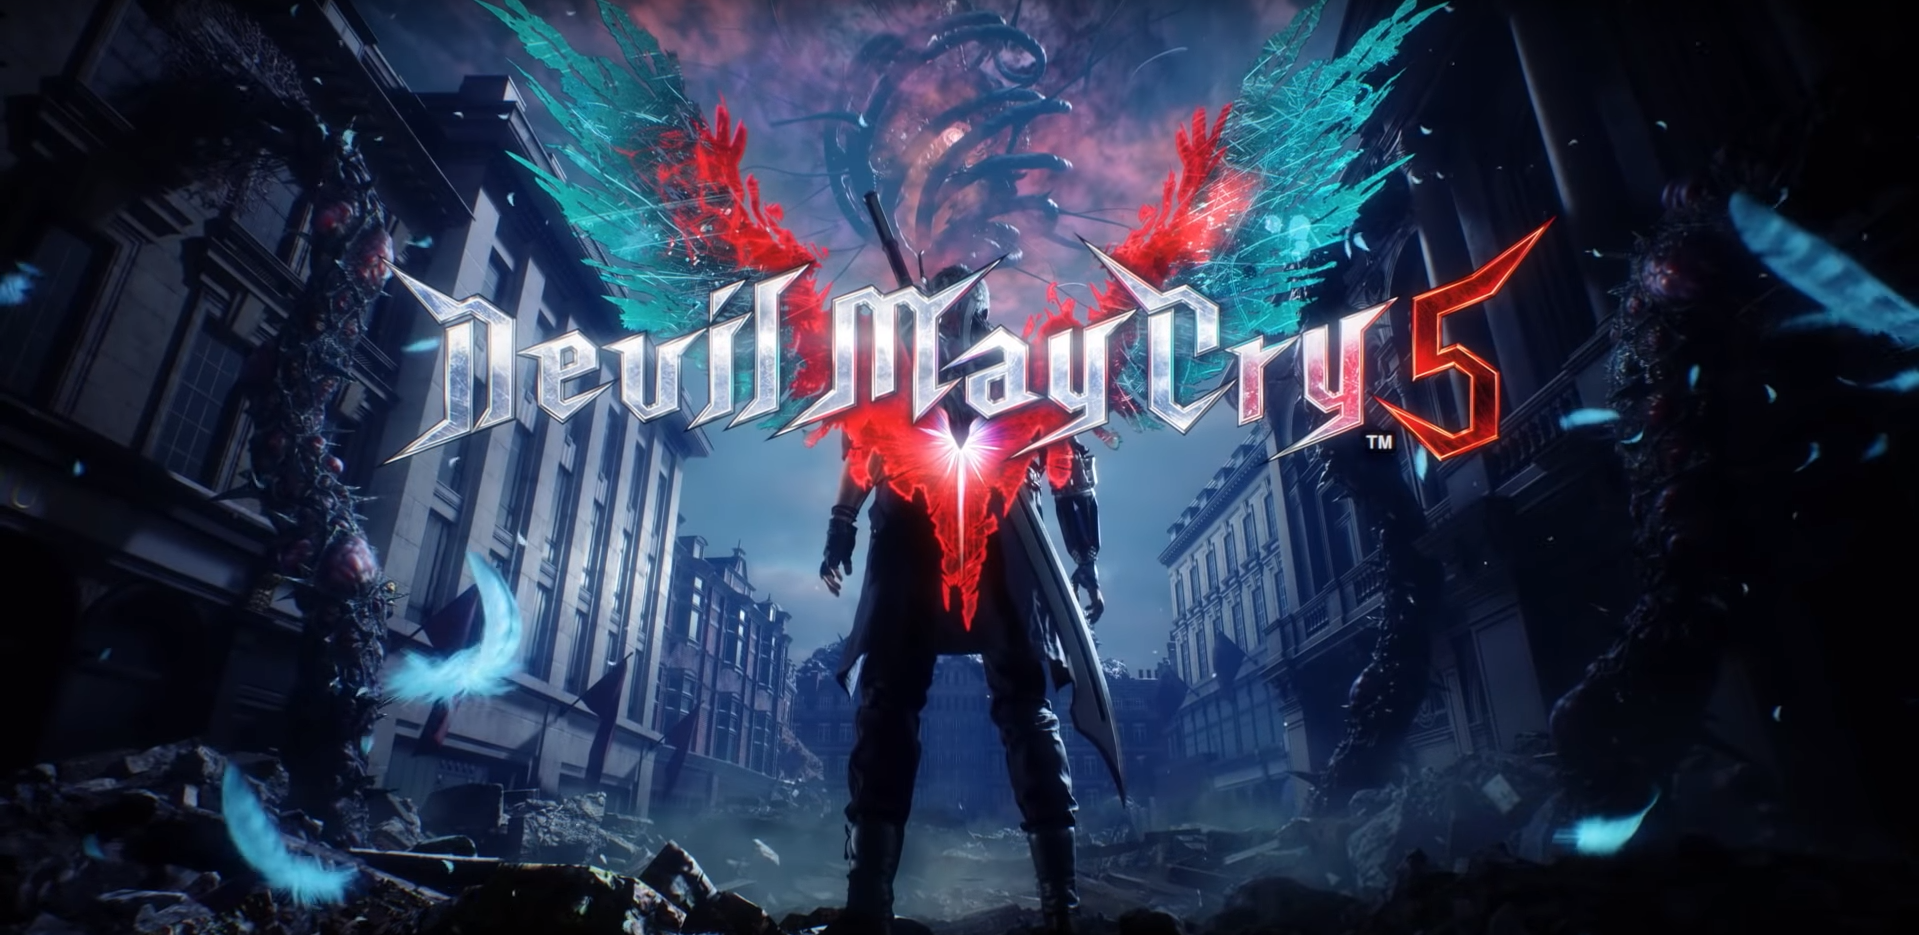 Devil May Cry 5 trailer